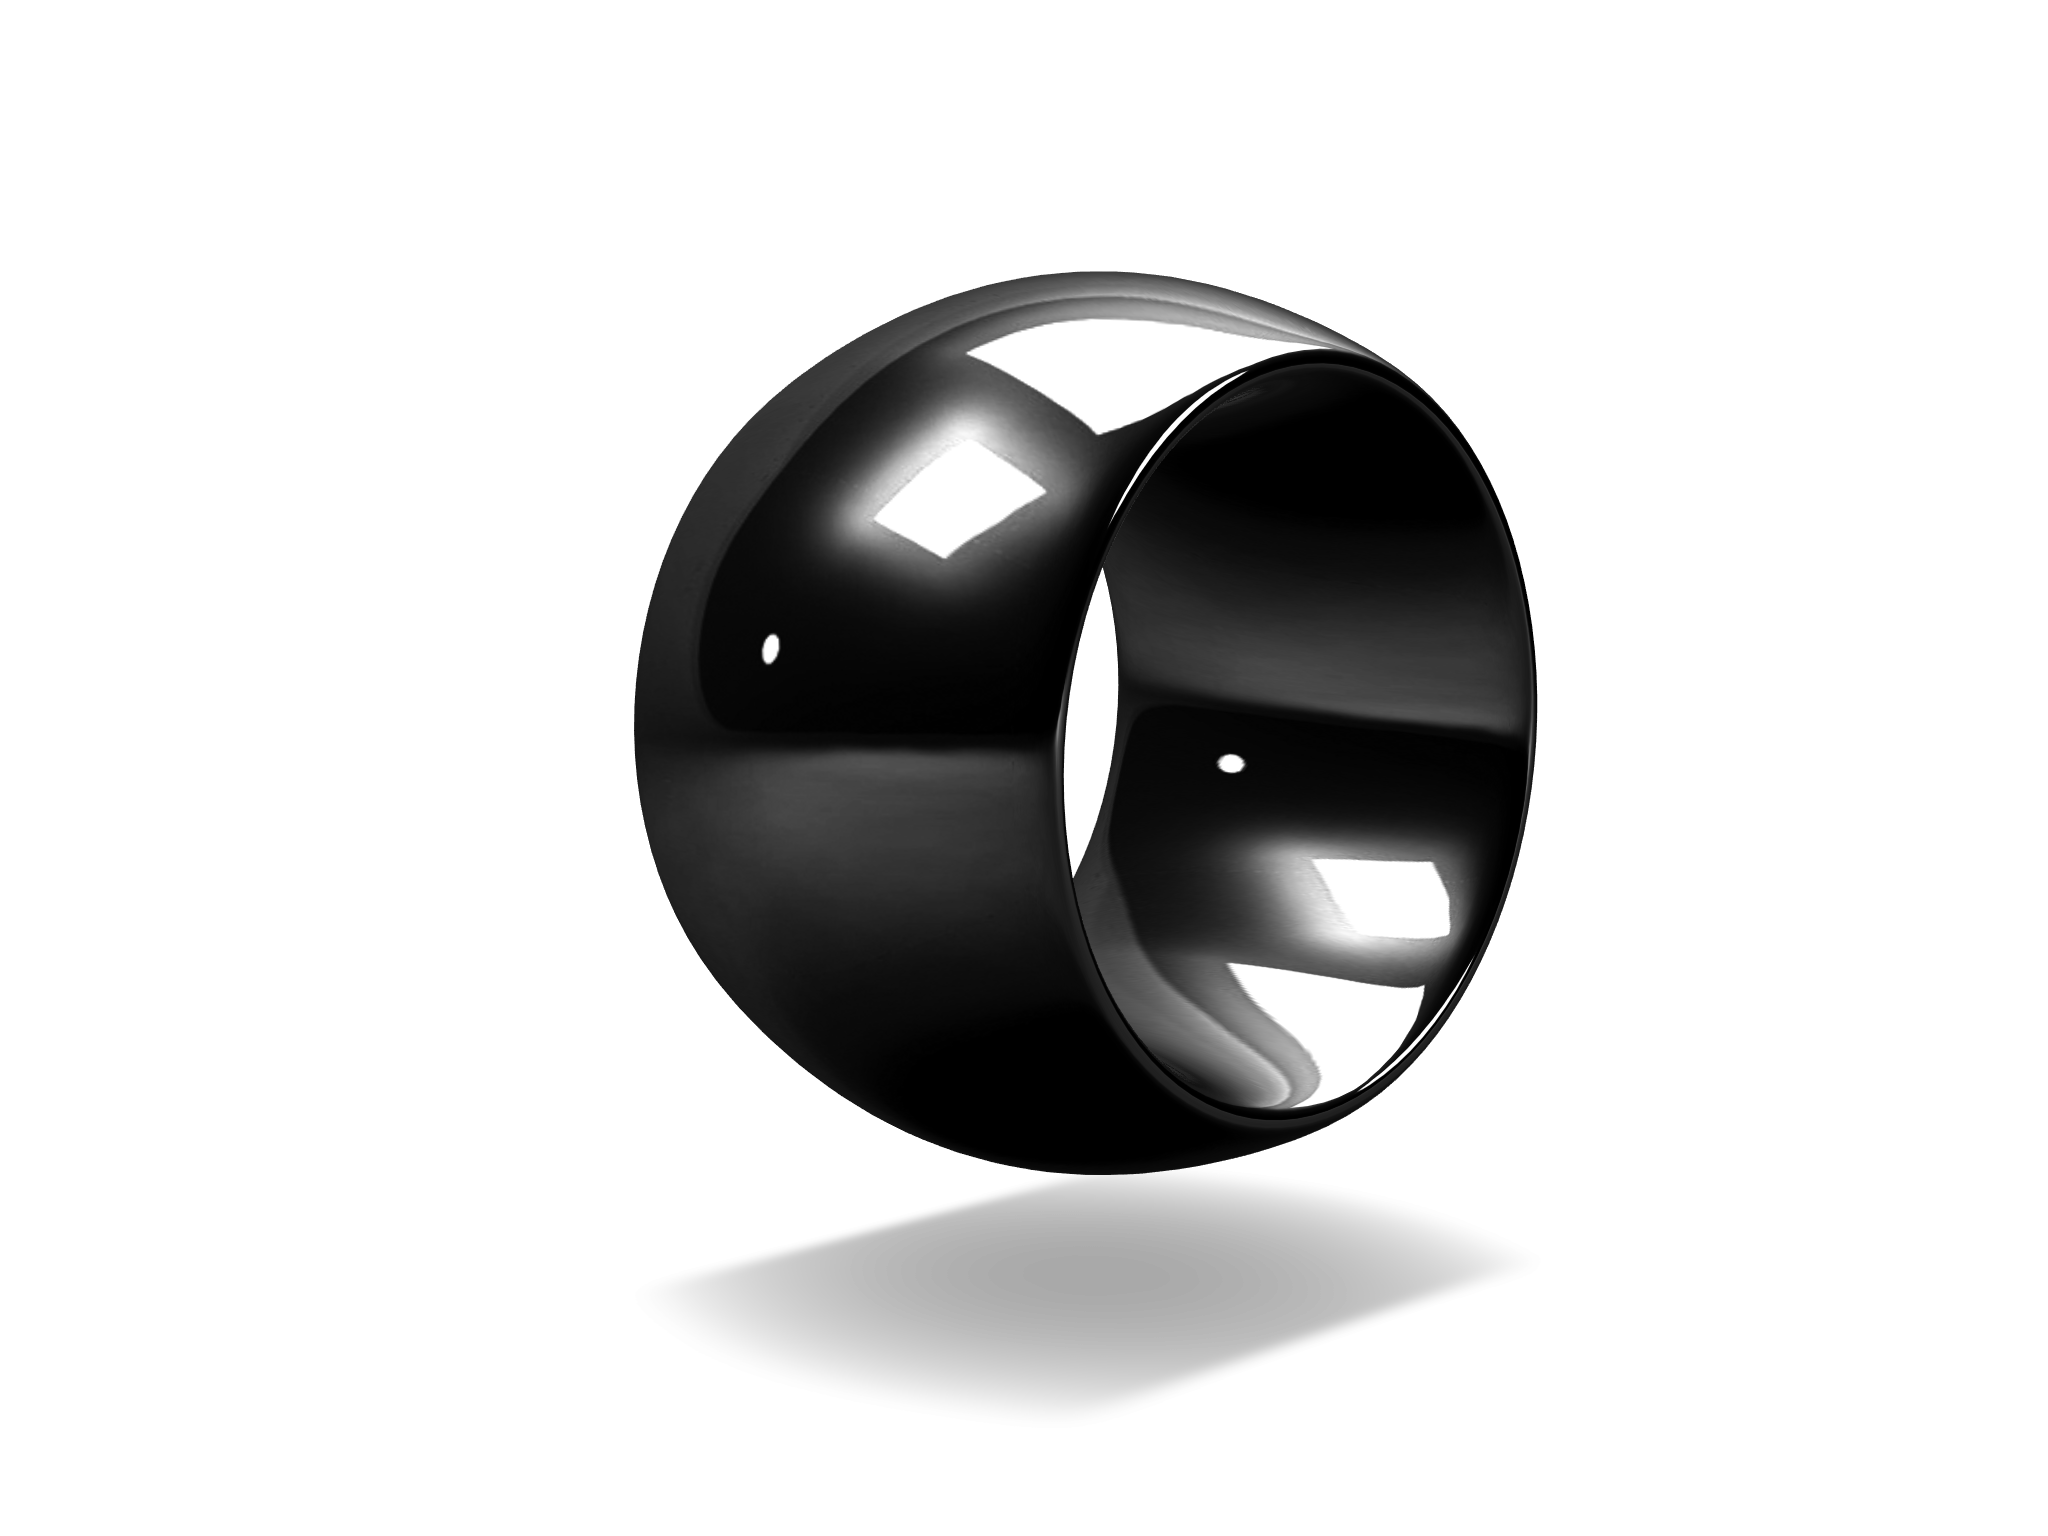 Bold Ring Black - 3D design by Adn Cetin Dec 18, 2017